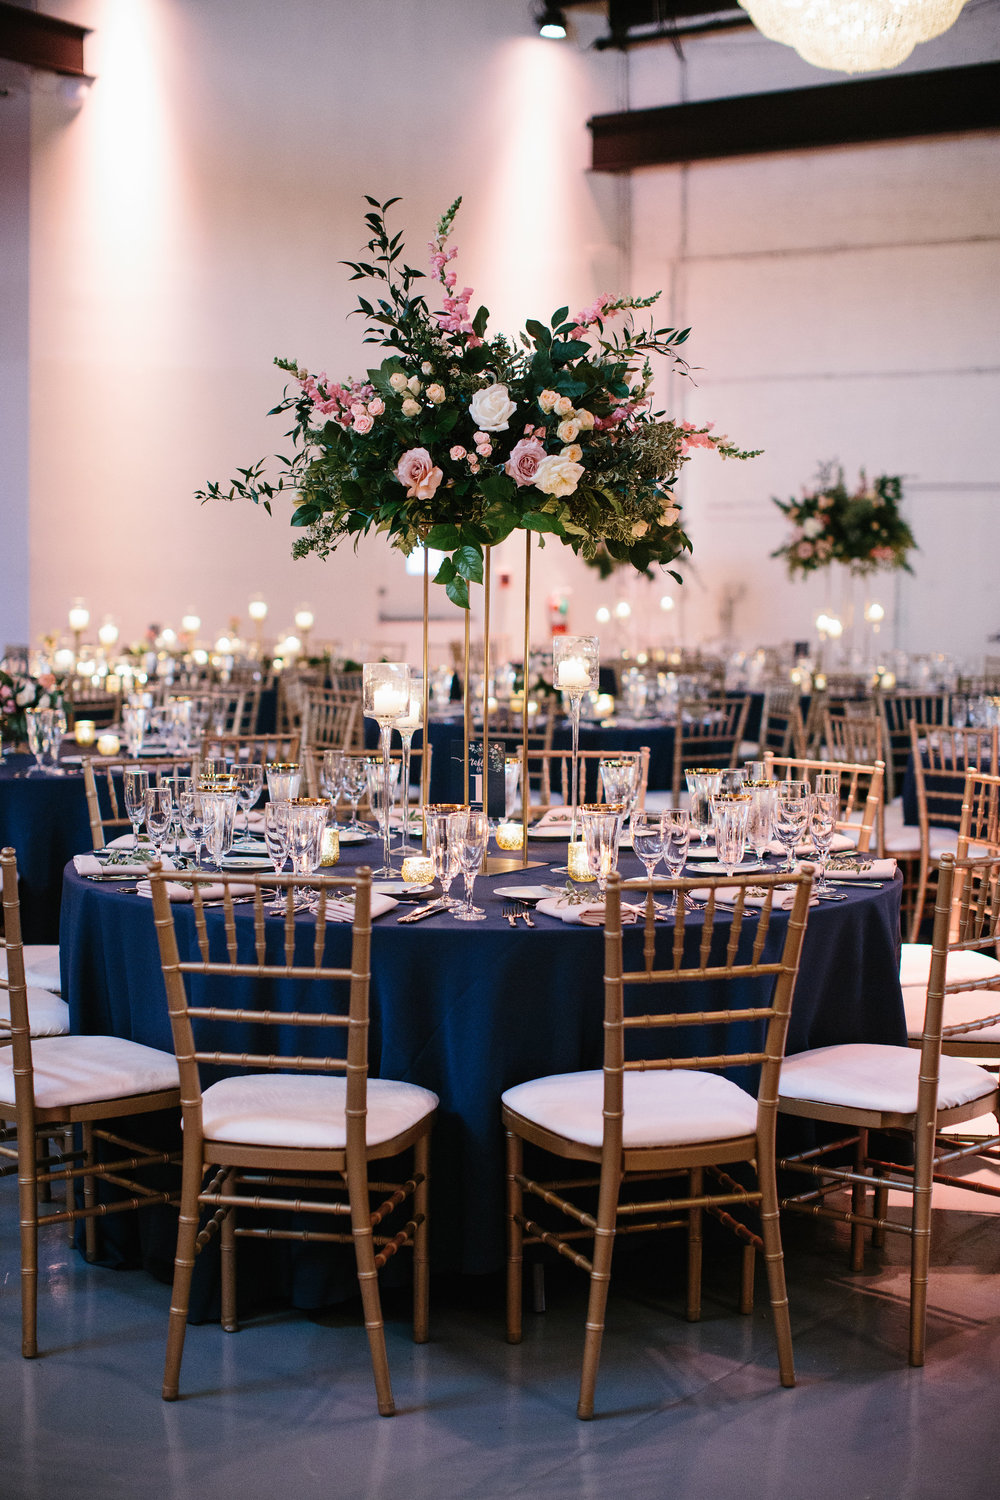 Flowers by Fleur Inc, Photo by Katie Kett, Venue Moonlight Studios